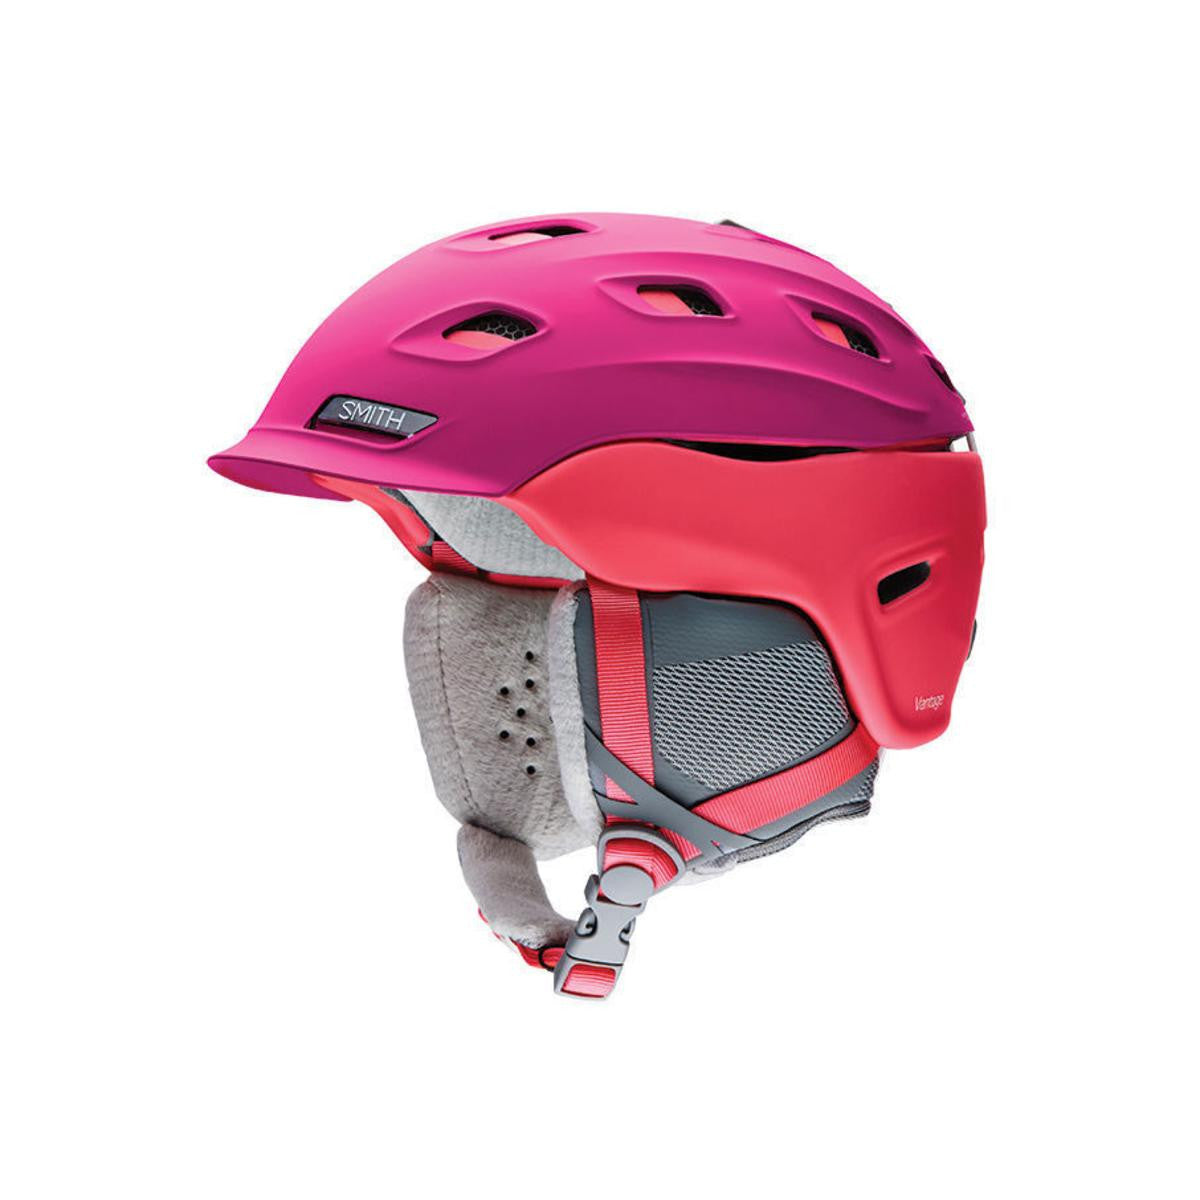 Smith Womens Vantage Helmet